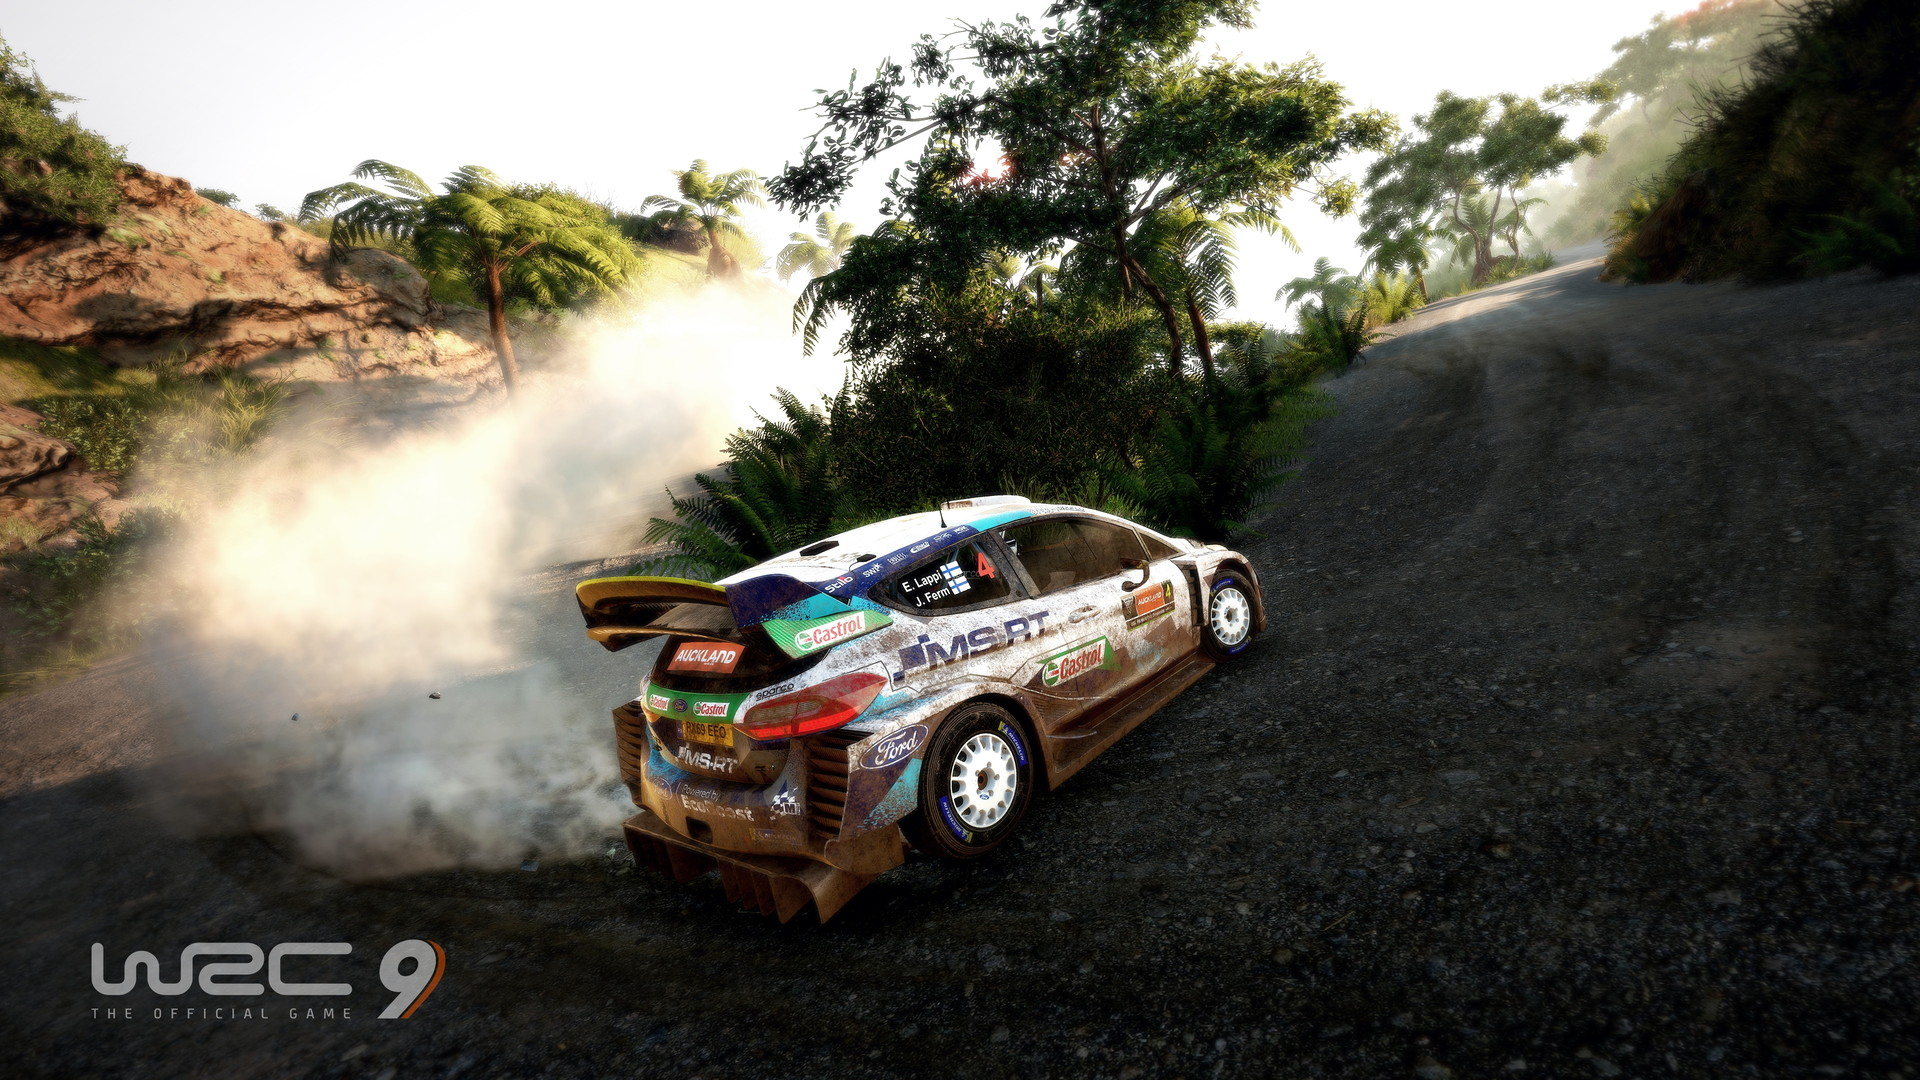 WRC 9 - screenshot 4